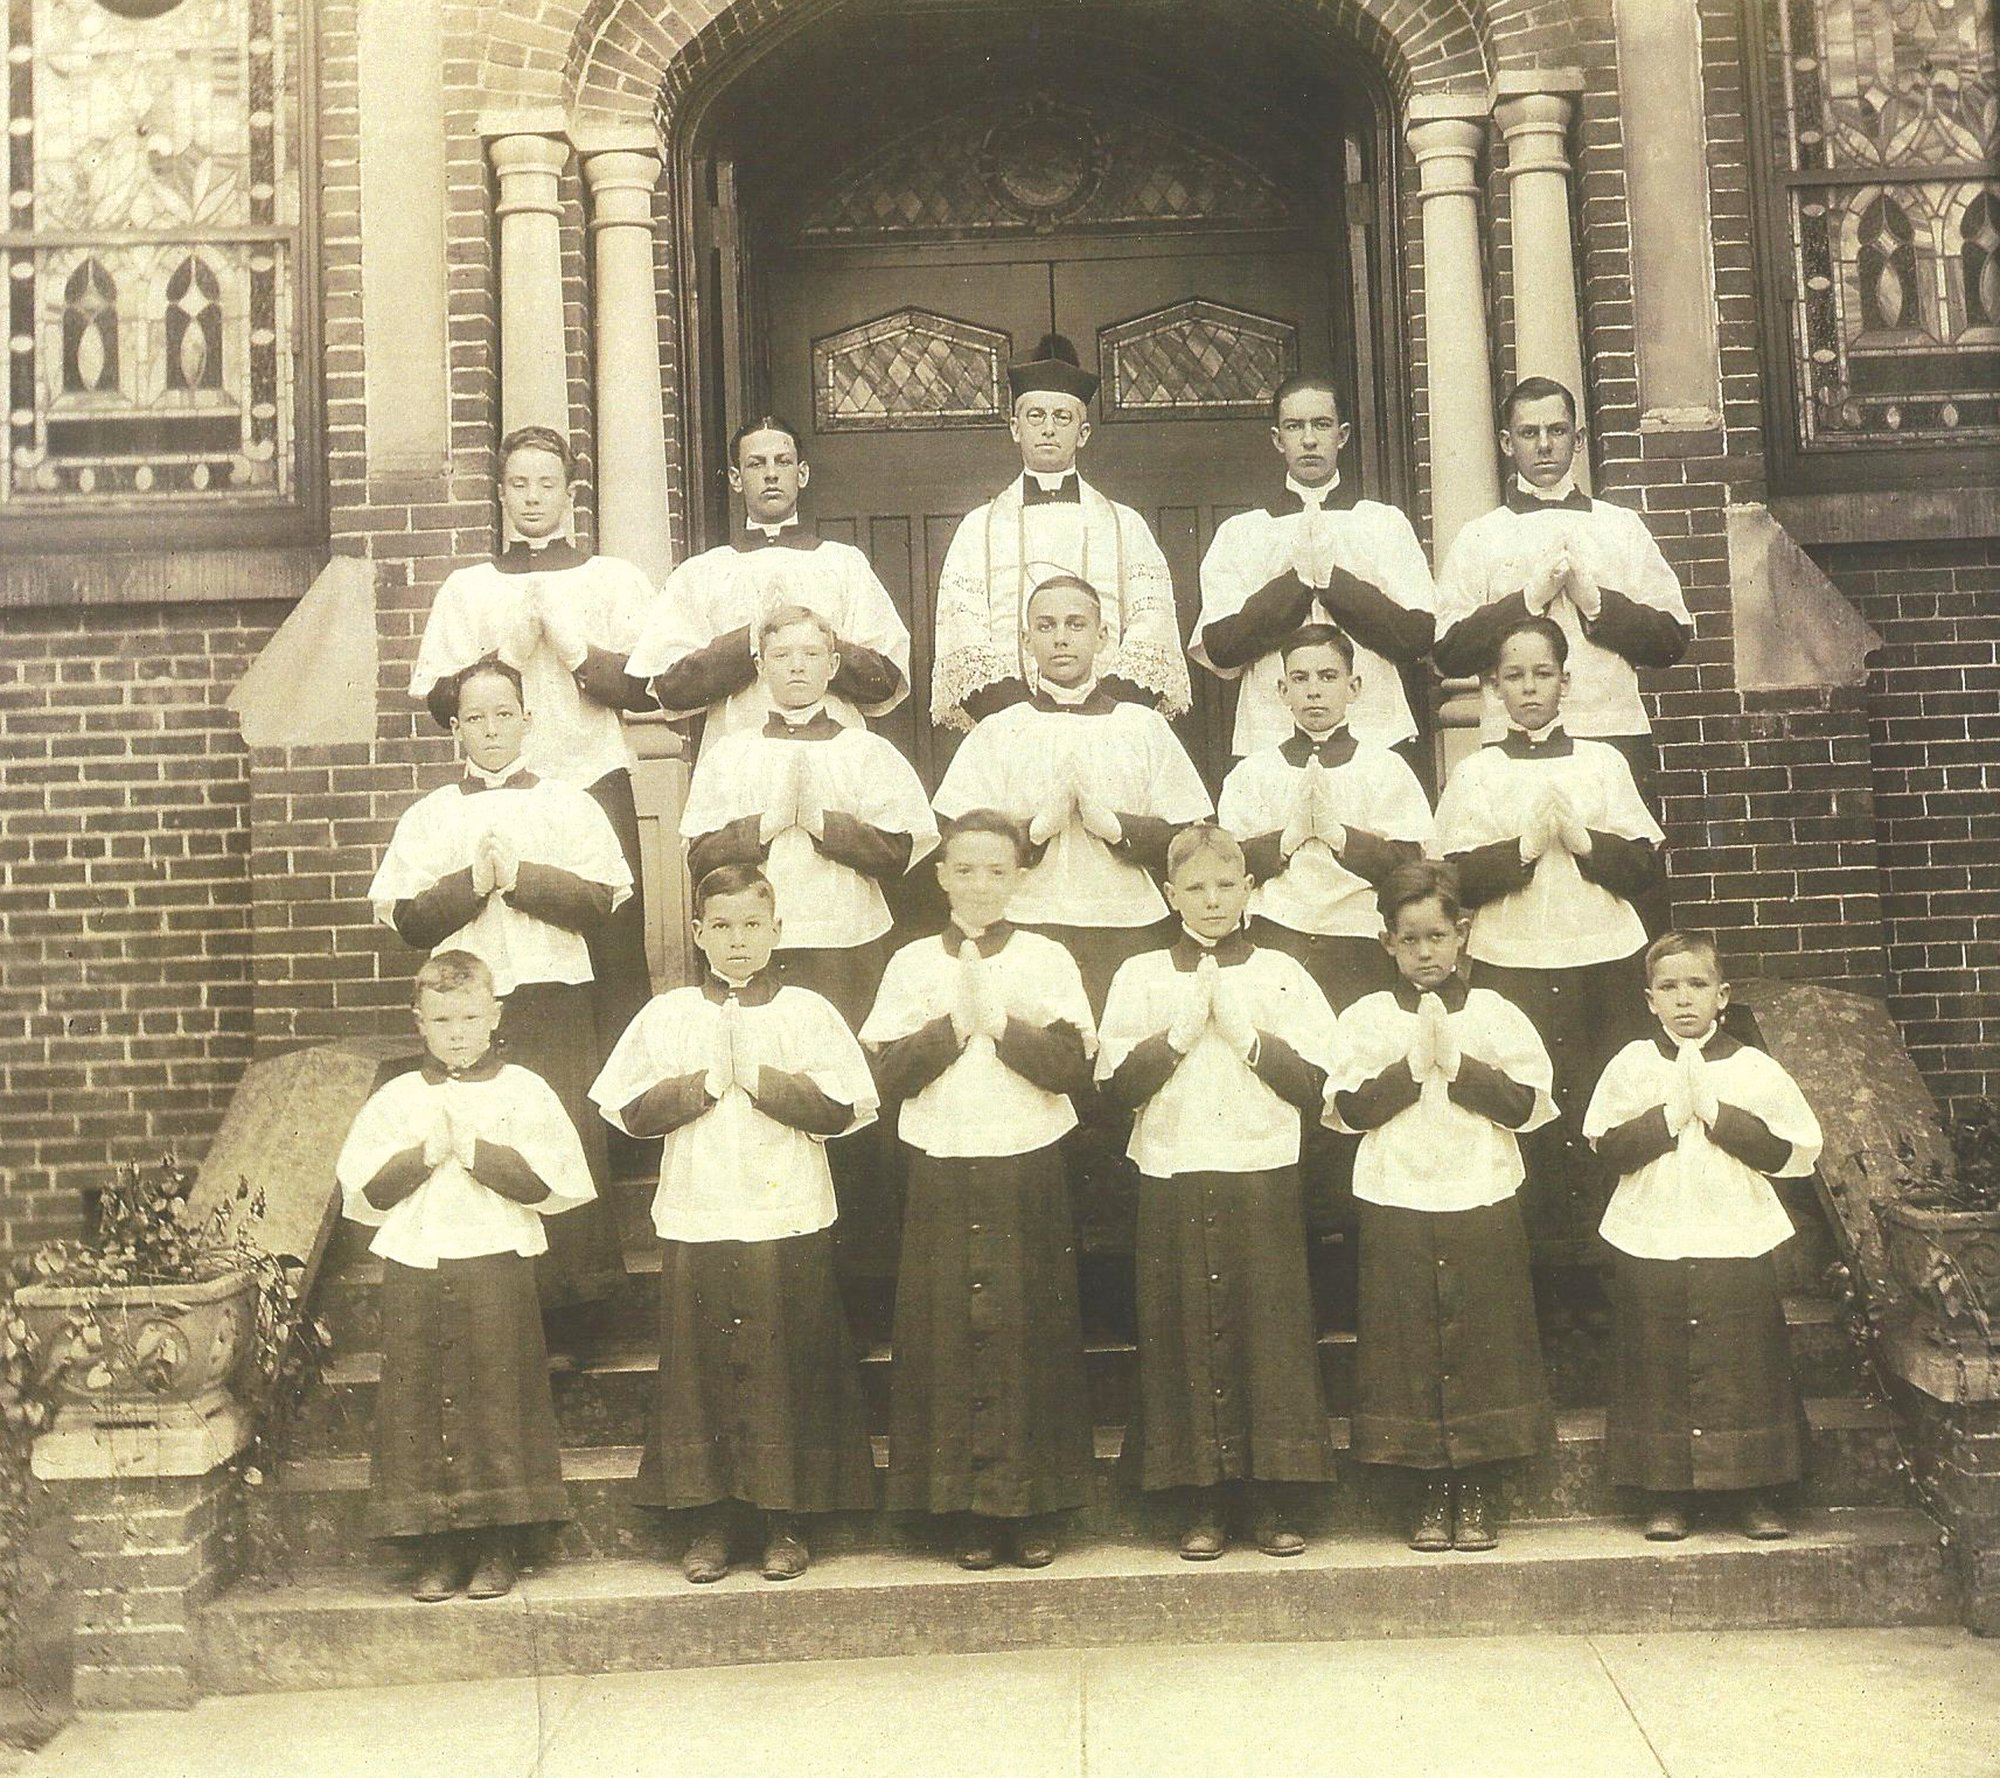 St. Anne Catholic Church's pastor and altar boys are seen in 1920. First row from left are Werber Bryan, Louis Persighn, Bernard Epperson, Clemont Bryan, Ashley Mood, Joseph Persighn. Second row from left are Mood's twin (Norwood or Preston), Frances Epperson, John Brennan, Jack McKiever, Mood's other twin. Third row from left are William Bryan, Charles Crombe, Father Joseph Mahoney, George McKiever and Robert Bultman.